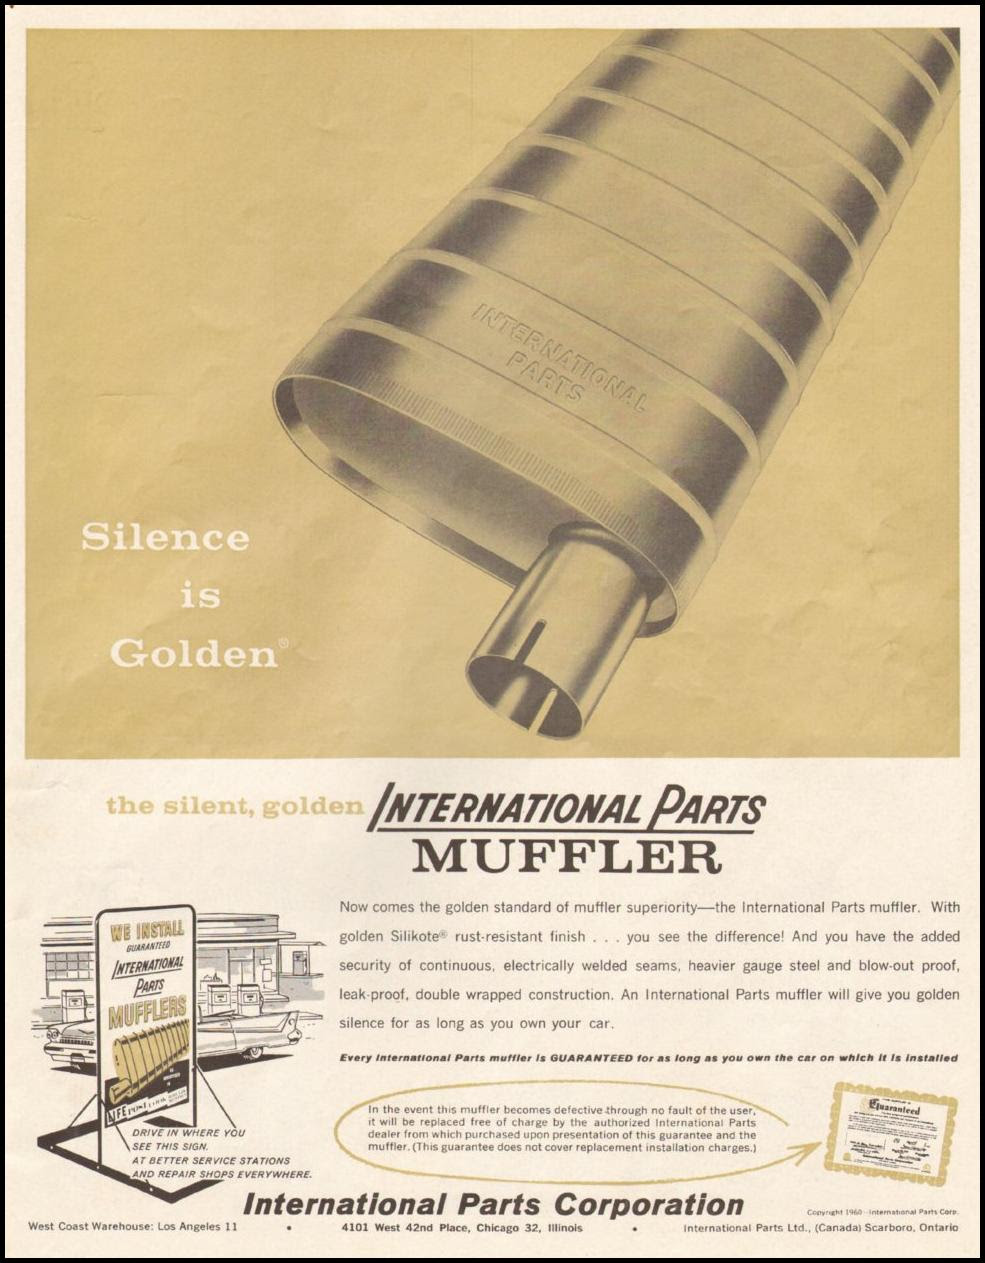 INTERNATIONAL PARTS MUFFLER SATURDAY EVENING POST 06/11/1960 p. 19